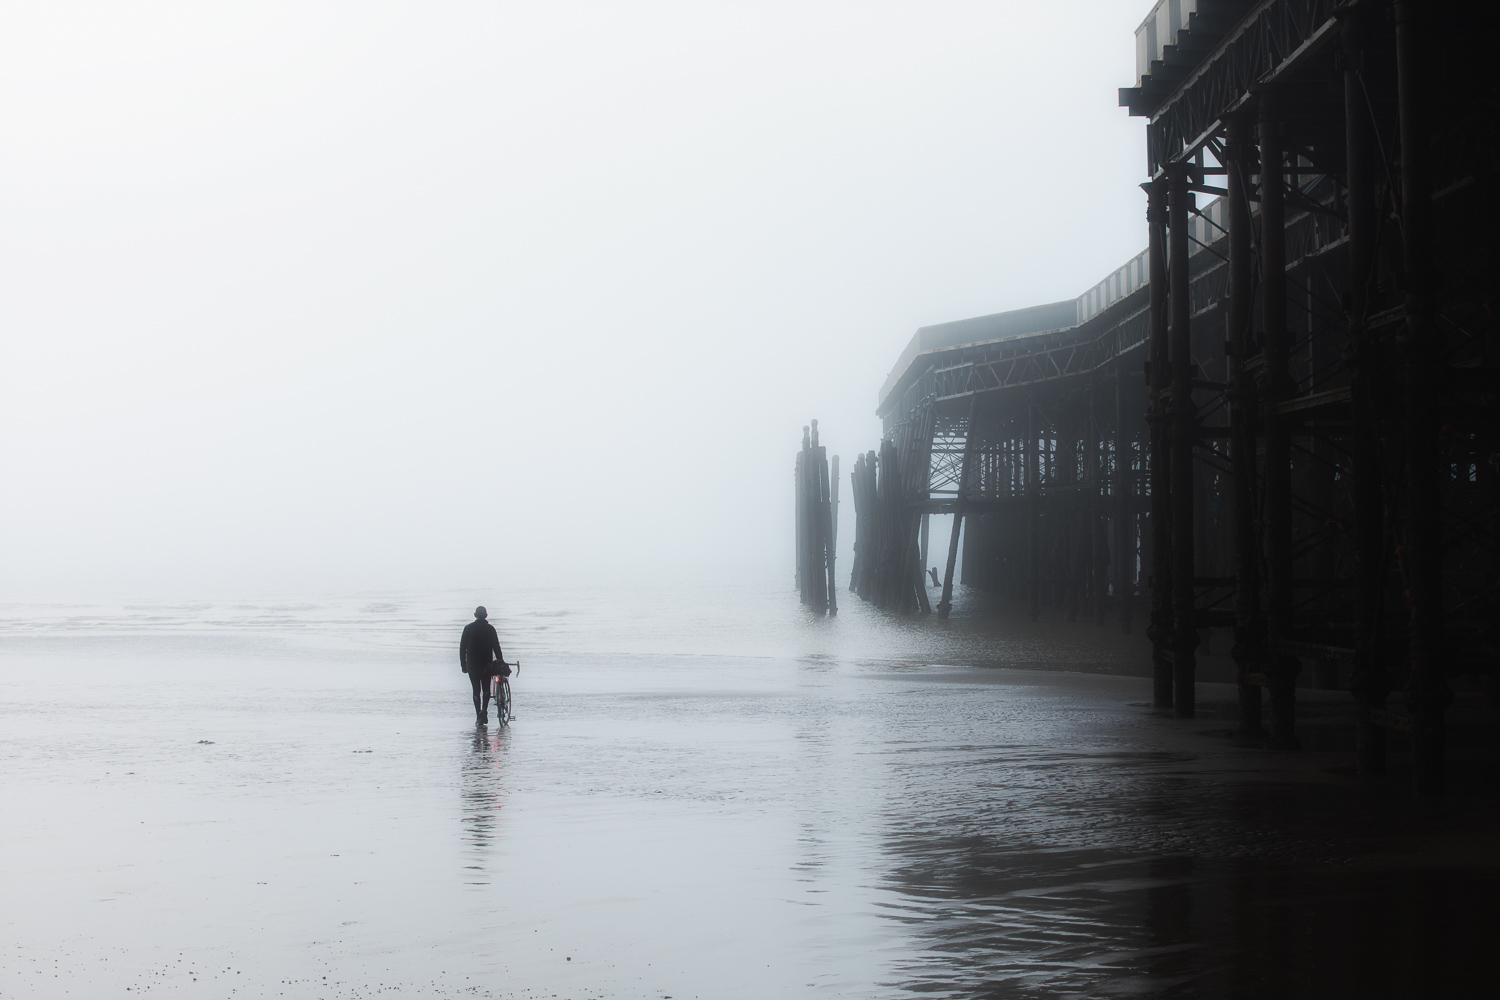 Monochrome of man with bicycle in mist beside footings of old pier